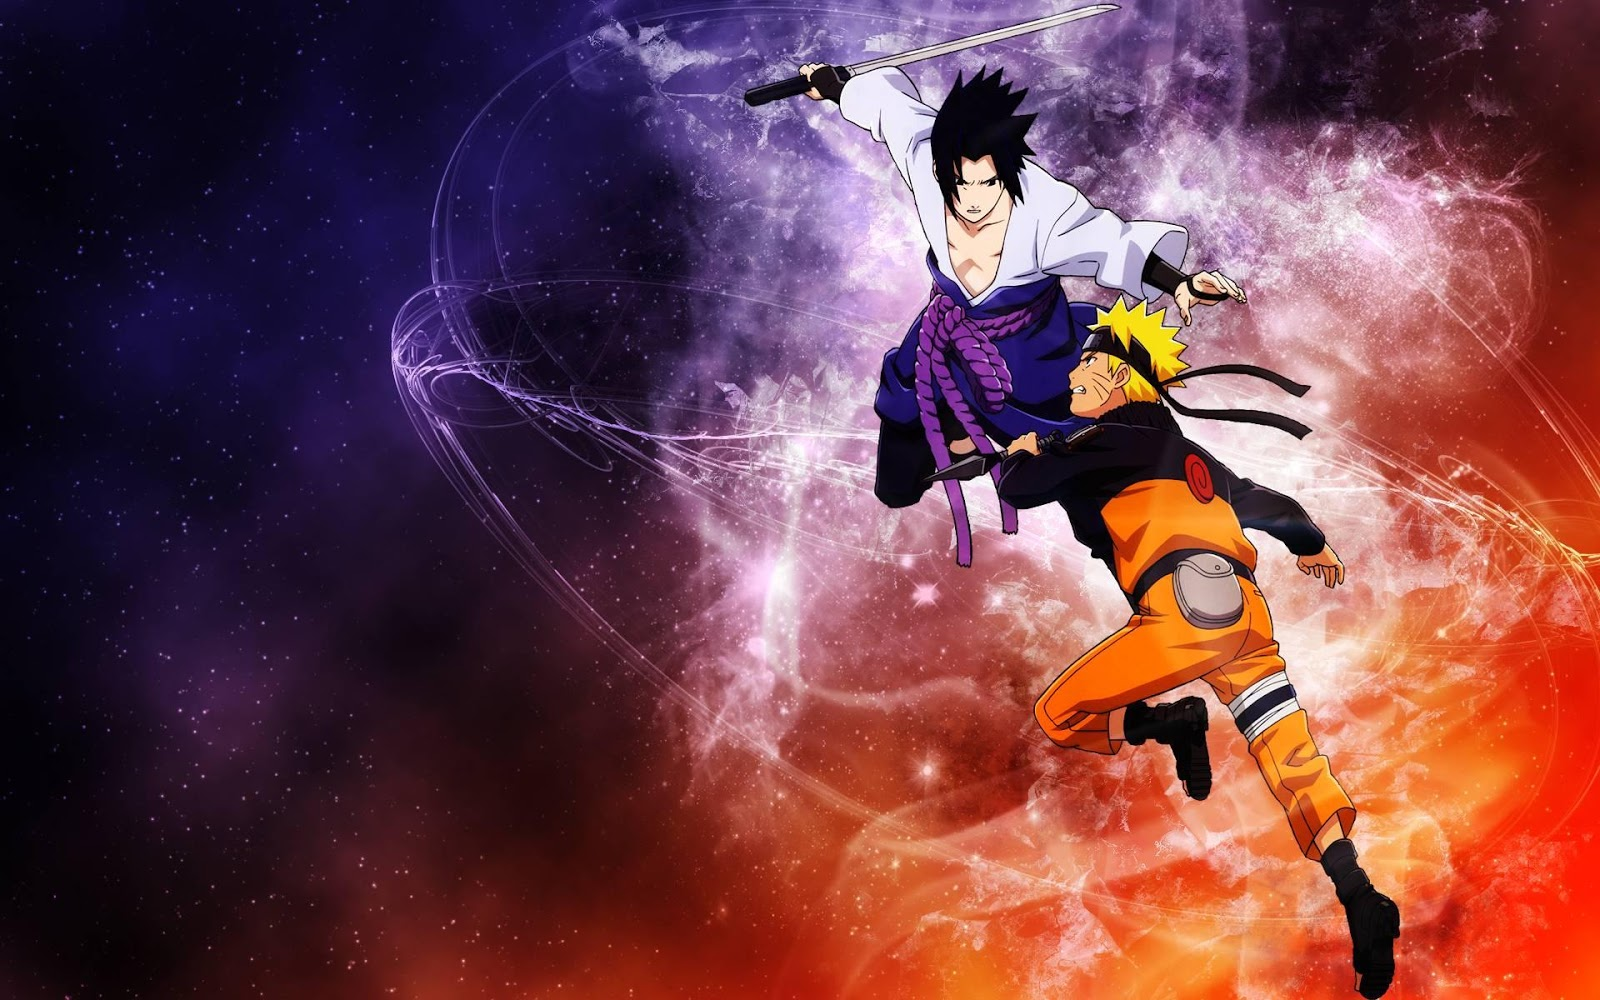 Naruto wallpaper 4k 2017 fonds d 39 cran hd - Image de narouto ...